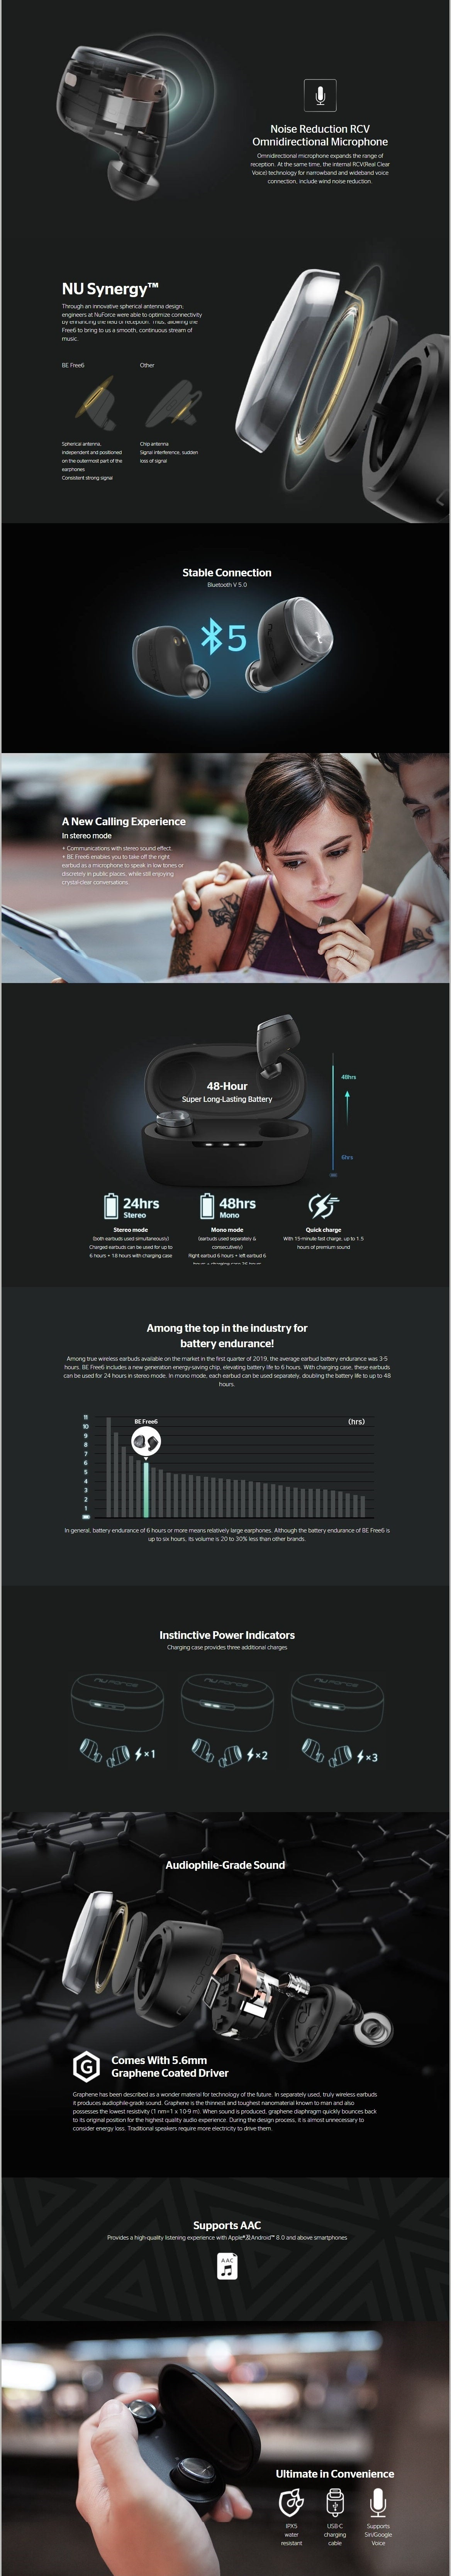 NuForce BE Free6 True Wireless Earbuds Main Features 2